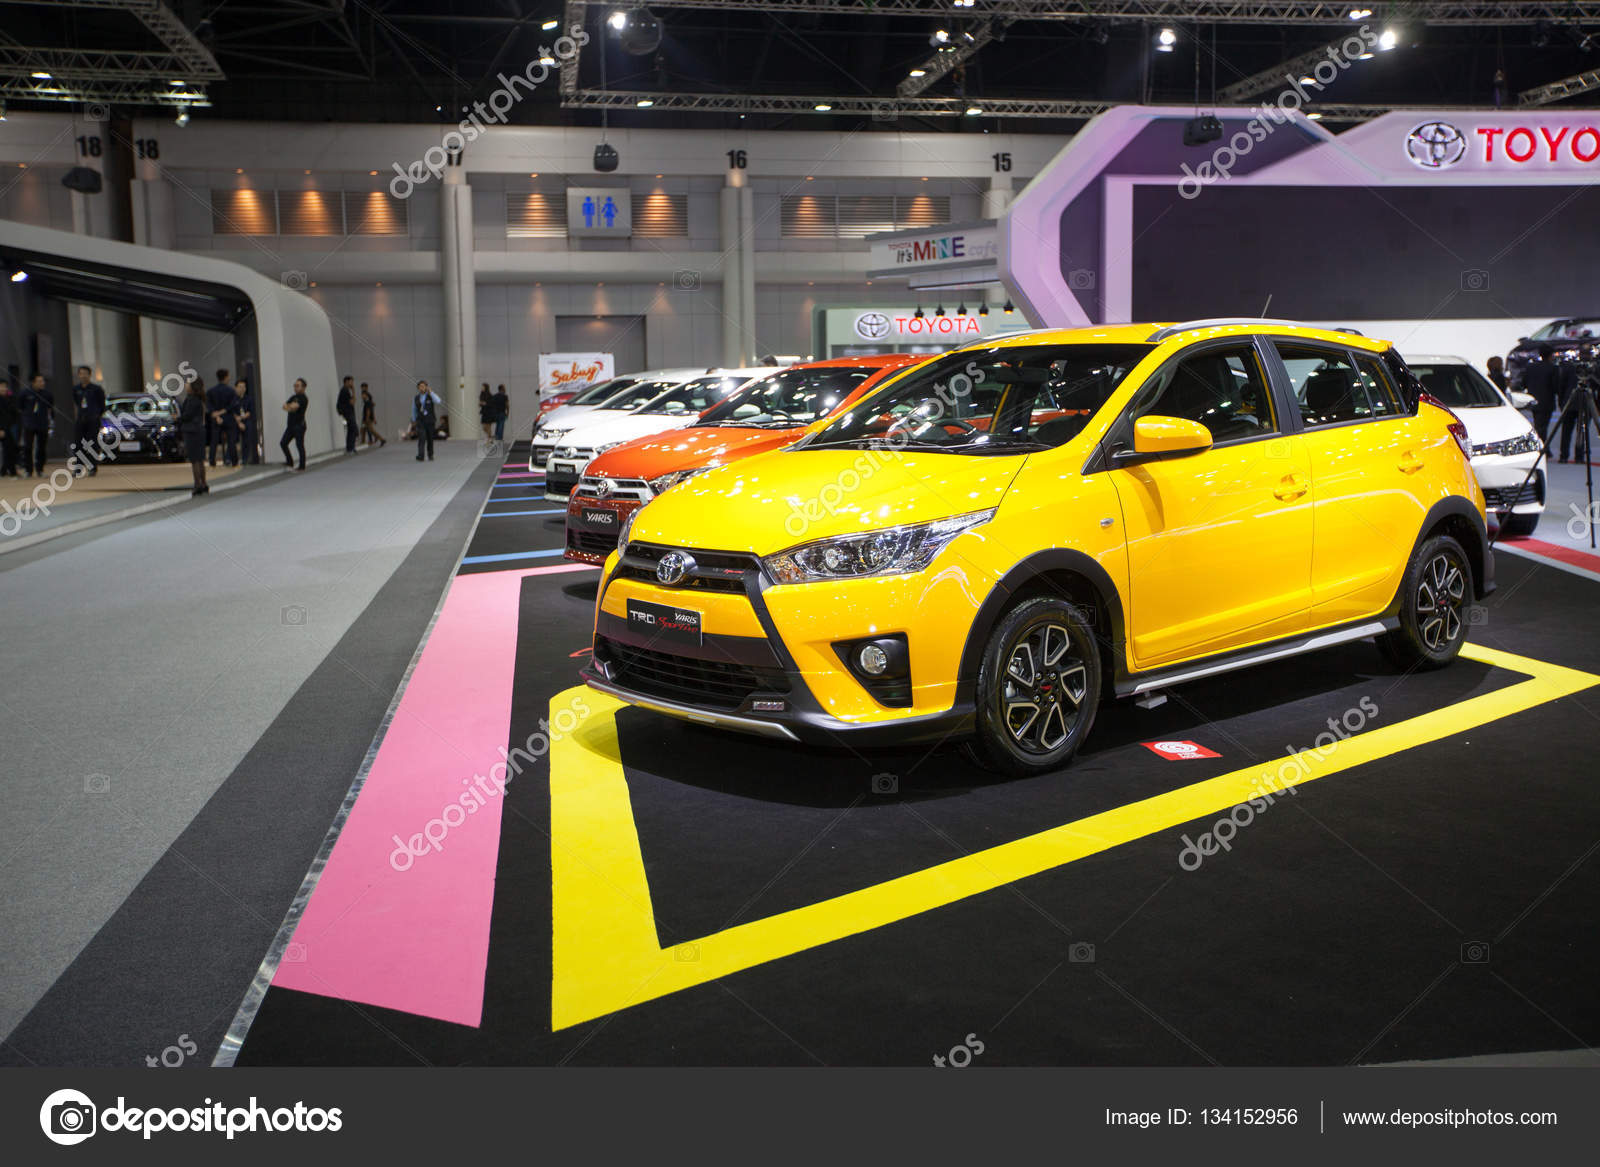 new yaris trd agya bangkok november 30 toyota sportivo car on display at motor expo 2016 in thailand photo by bankerwin